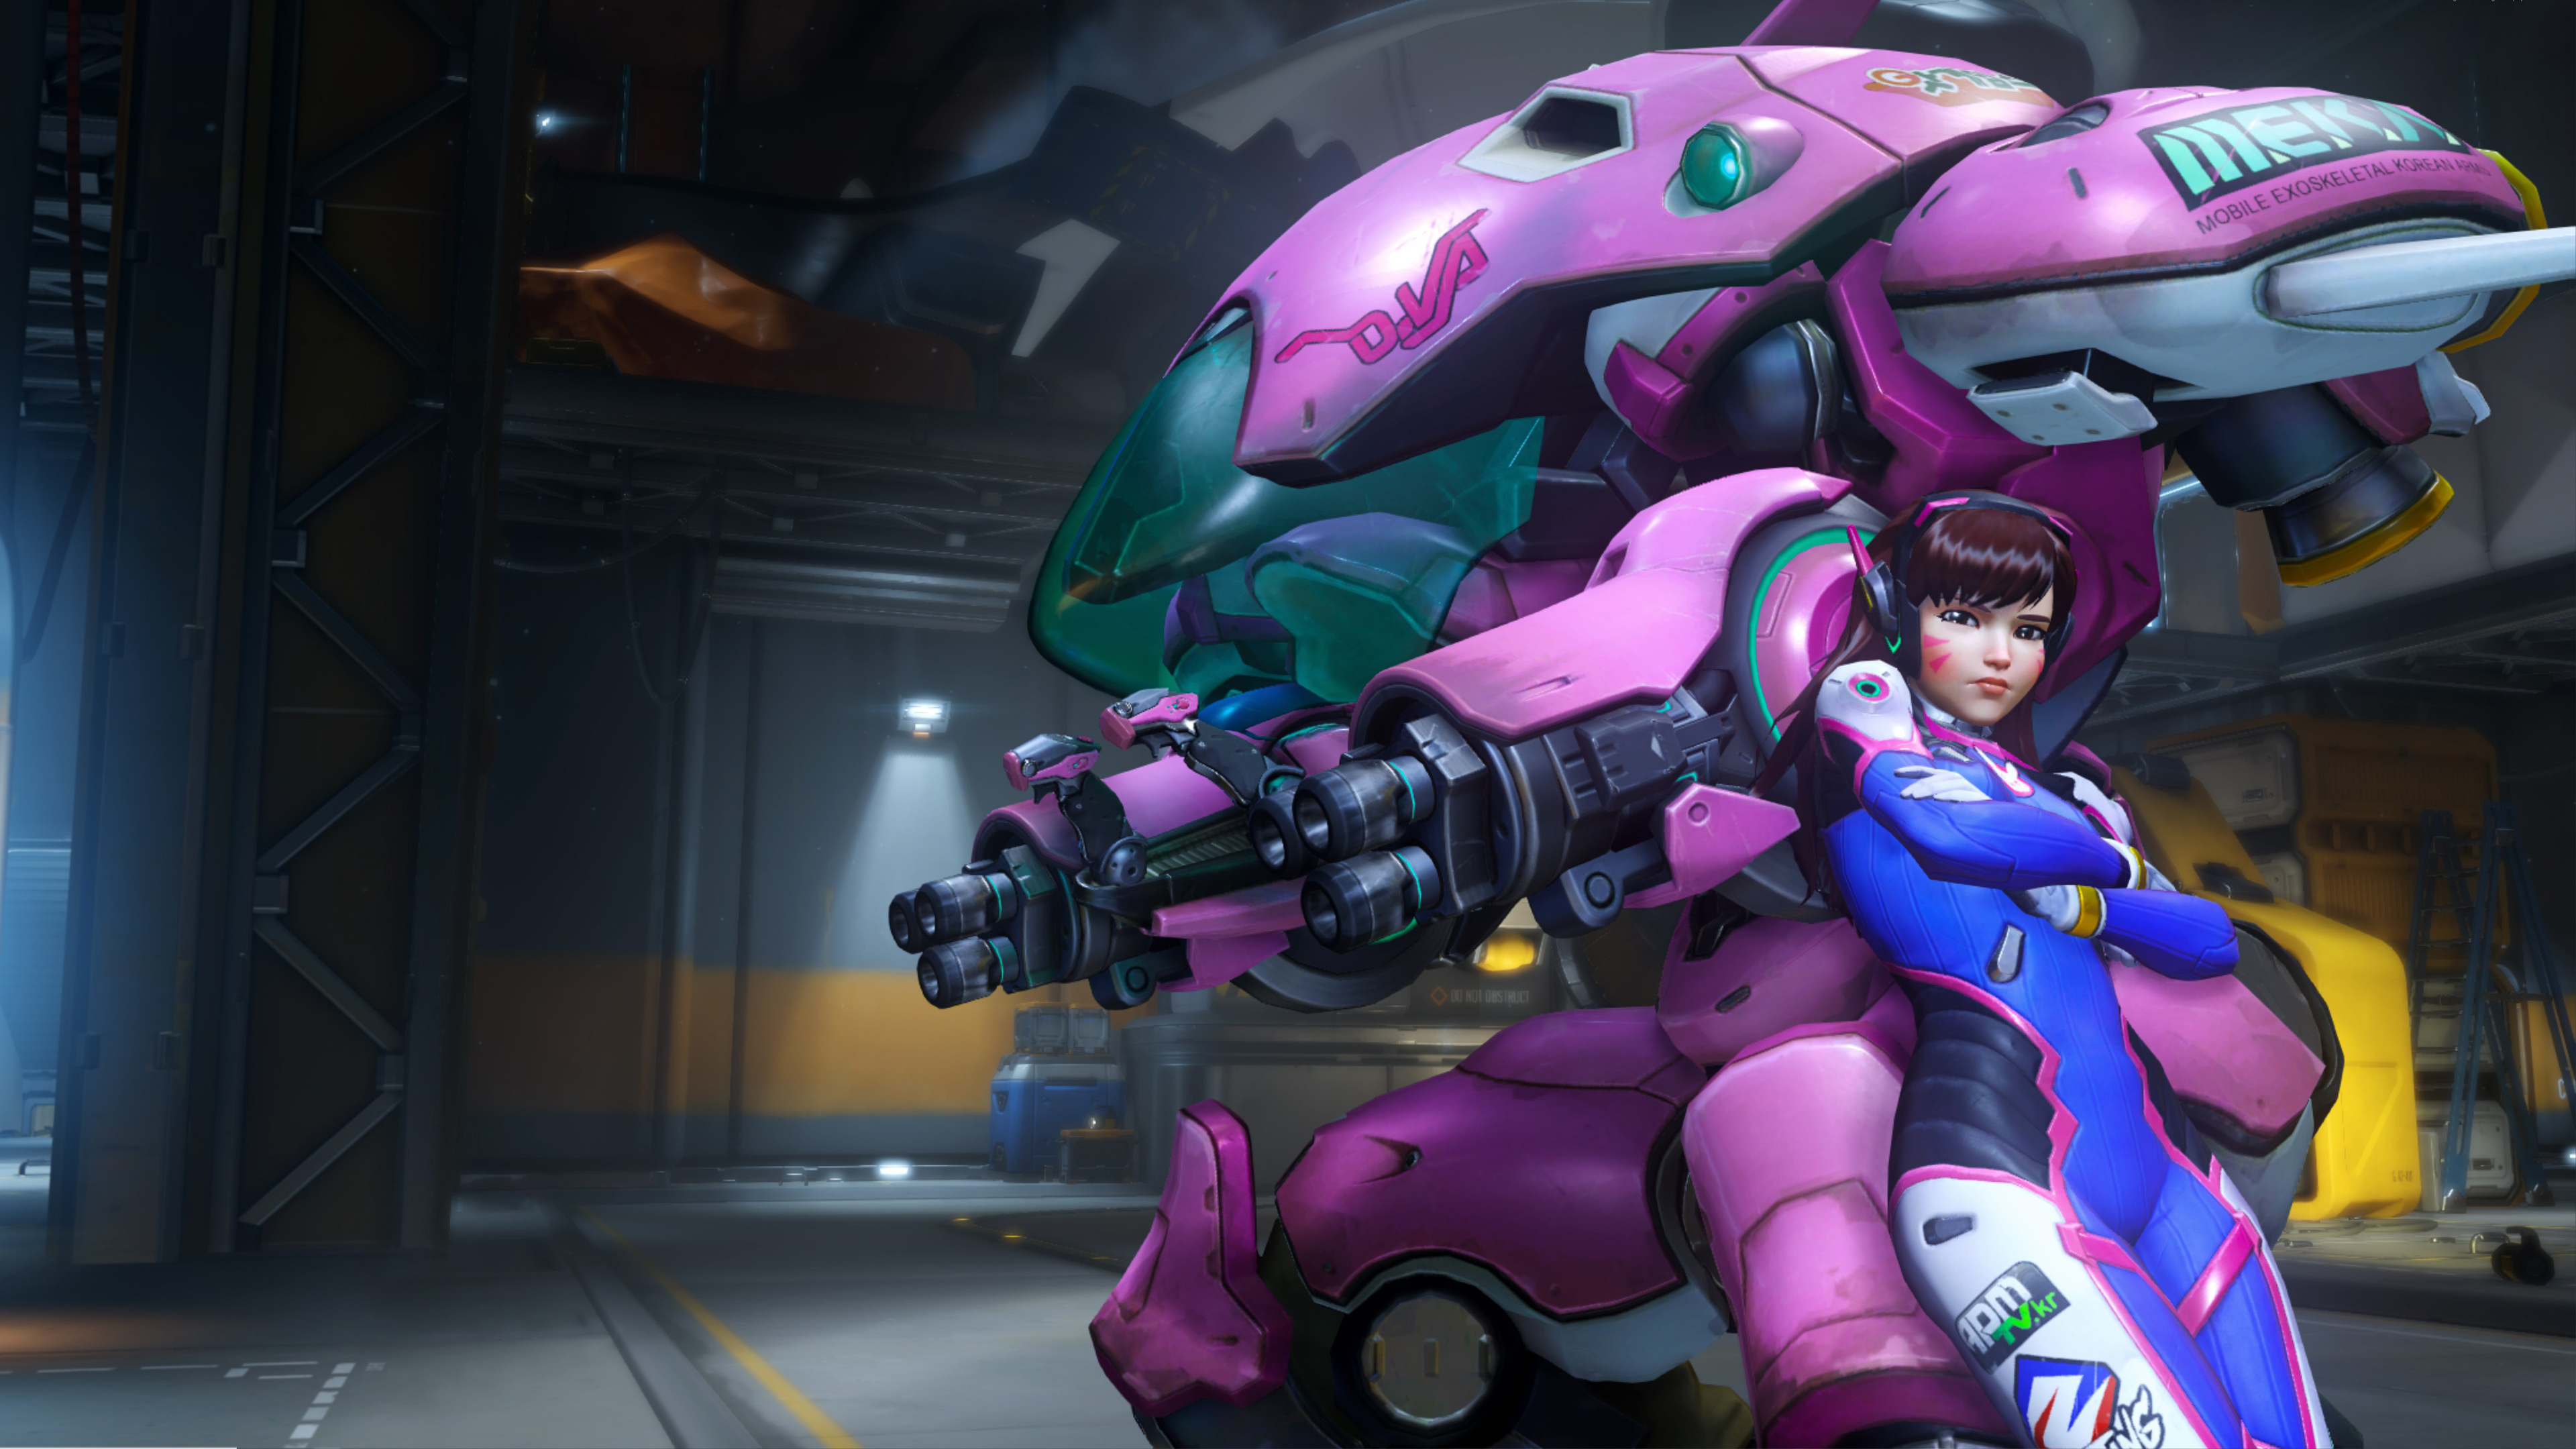 Va Overwatch Wallpapers HD Wallpapers 3840x2160